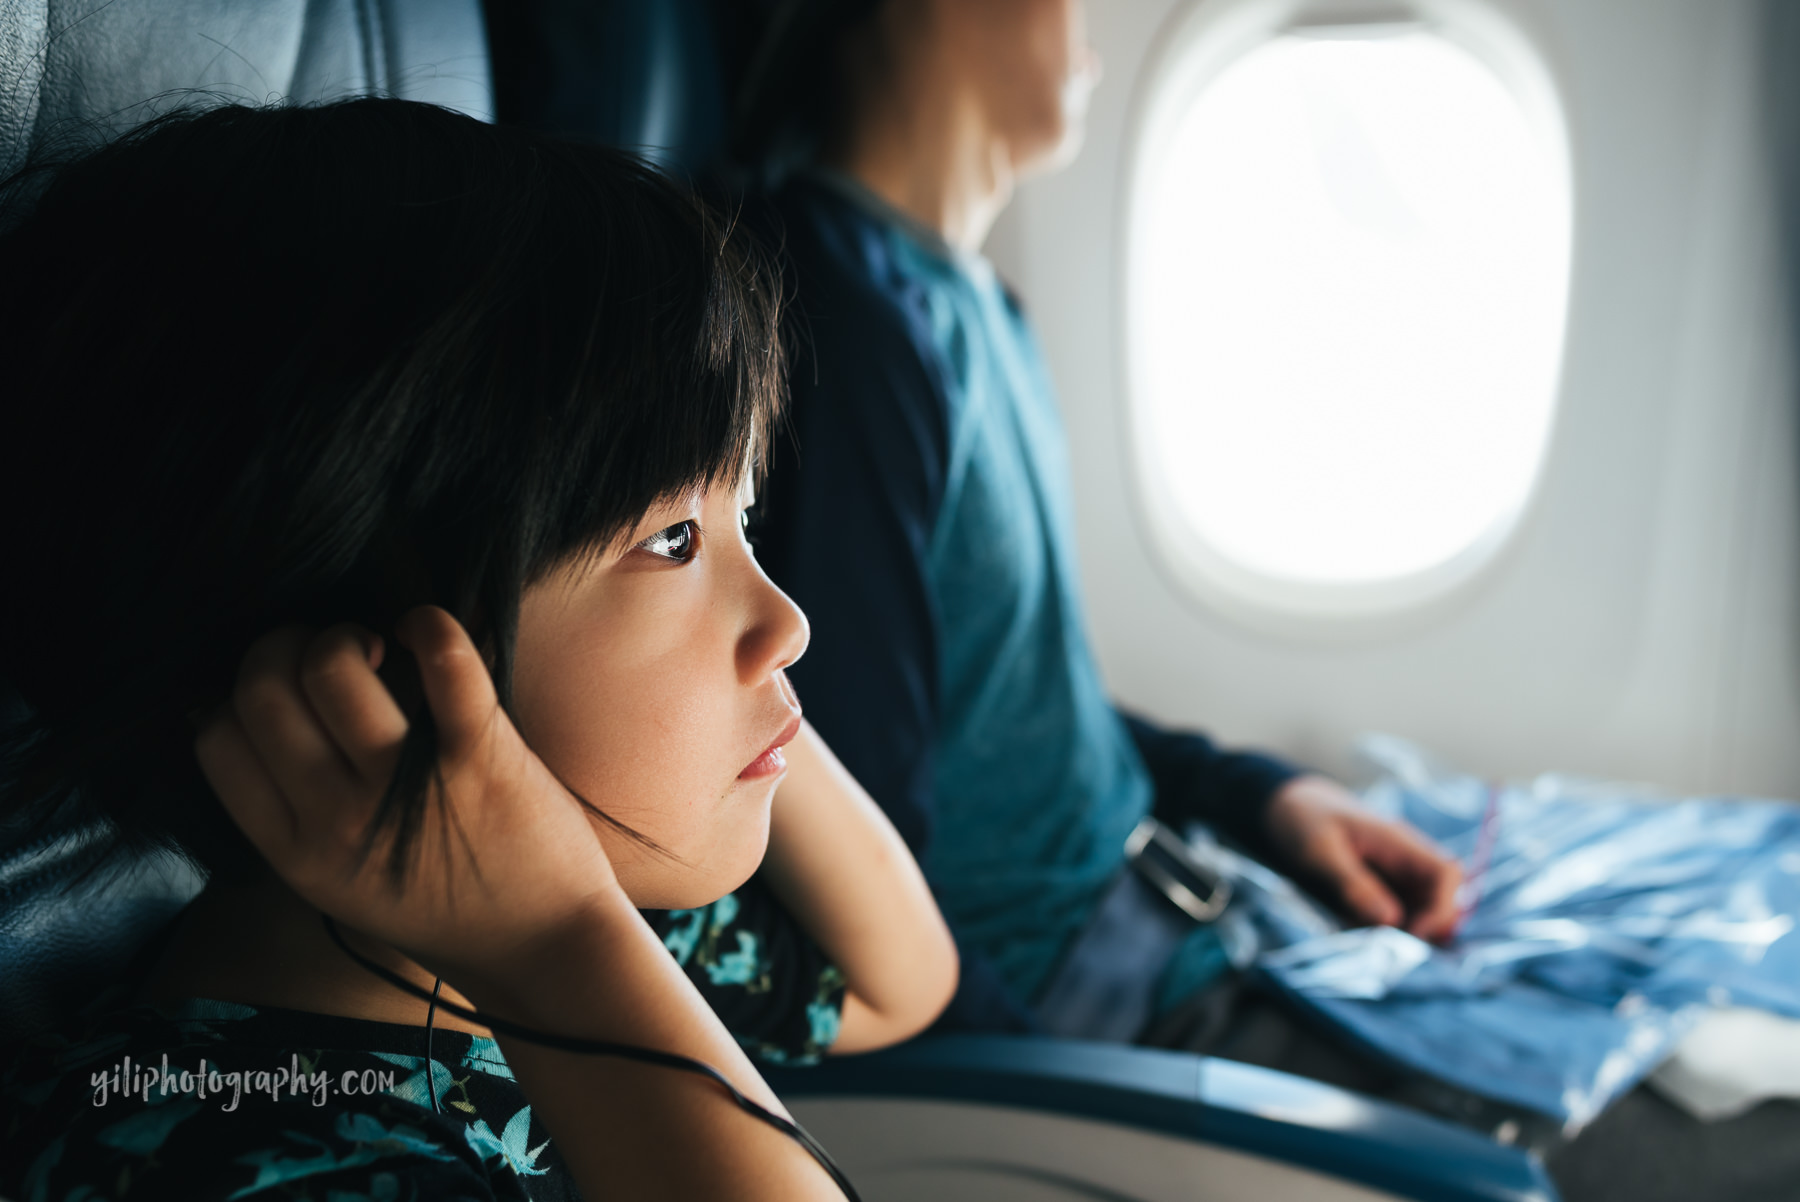 little girl on airplane holding headphones